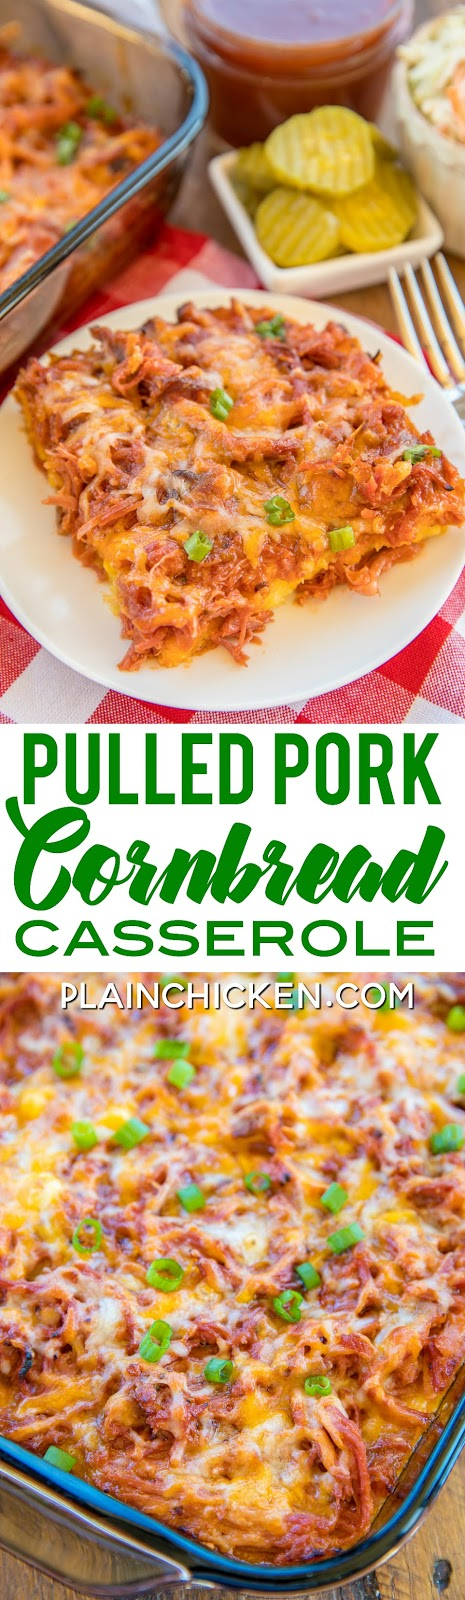 Pulled Pork Cornbread Casserole - sweet cornbread crust topped with pulled pork, BBQ sauce and cheese. Ready to eat in under an hour. Jiffy cornbread mix, creamed corn, eggs, cheddar cheese, milk, pulled pork, bbq sauce. SO easy and it tastes AMAZING! Everyone cleaned their plate and went back for seconds! Great way to use up any leftover pulled pork from your BBQ. #casserole #pork #BBQ